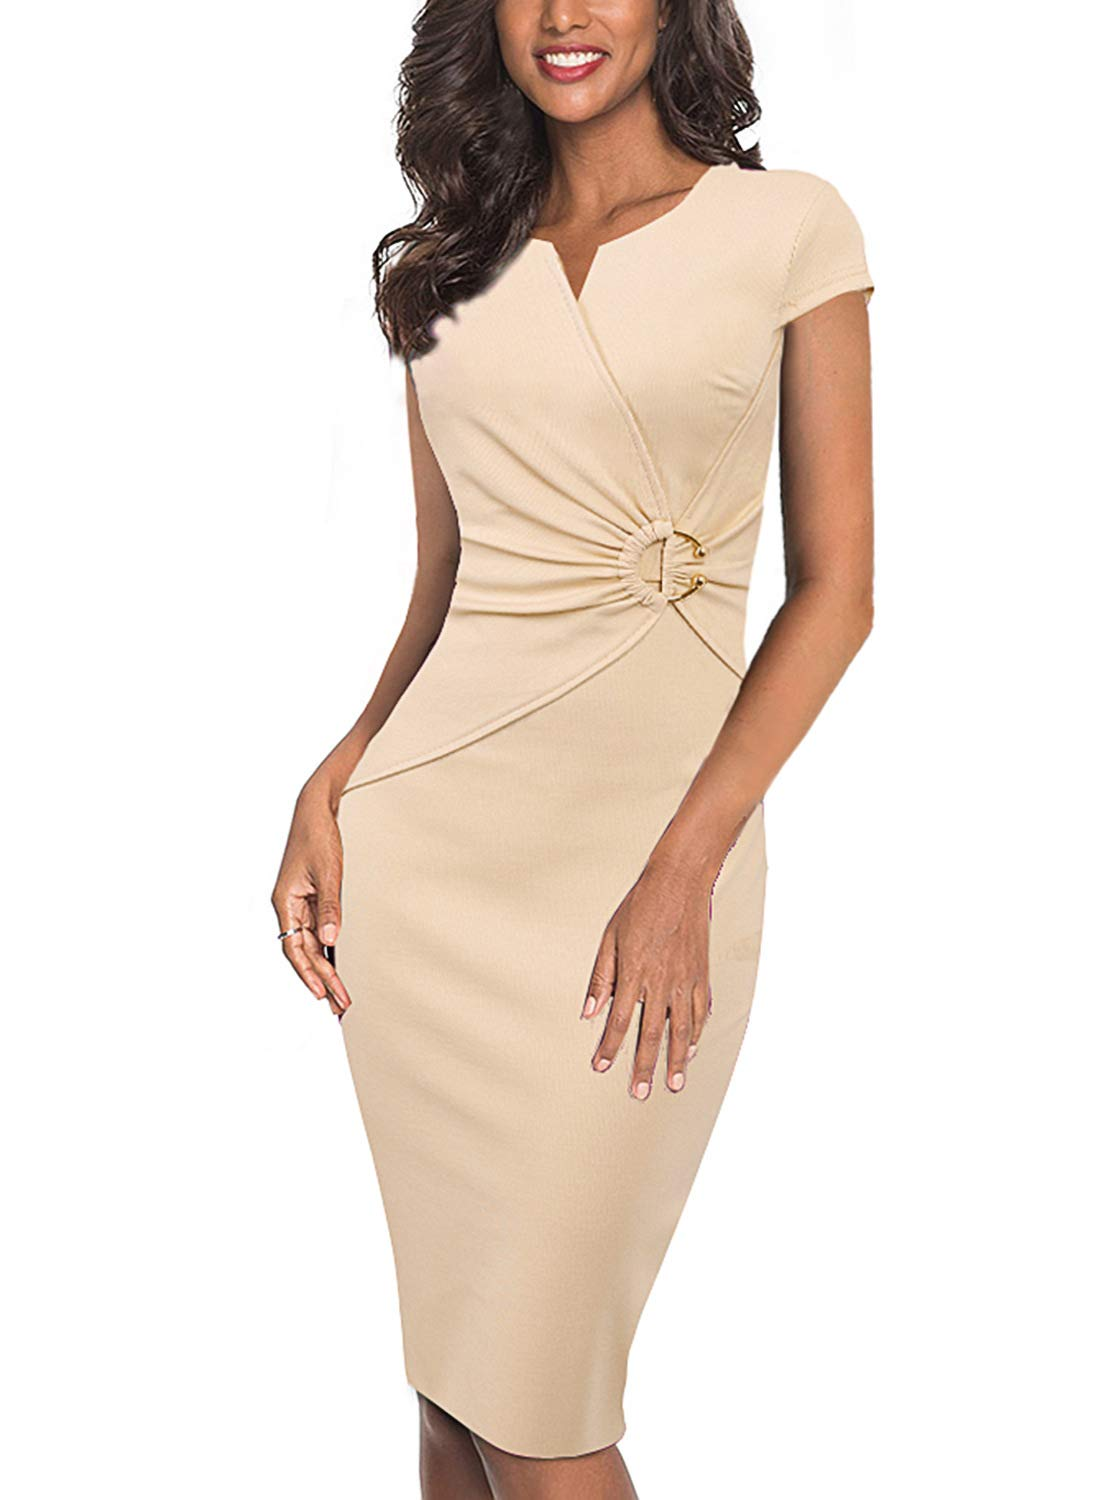 VFSHOW Womens Elegant V Neck Ruched Work Office Business Bodycon Sheath Dress